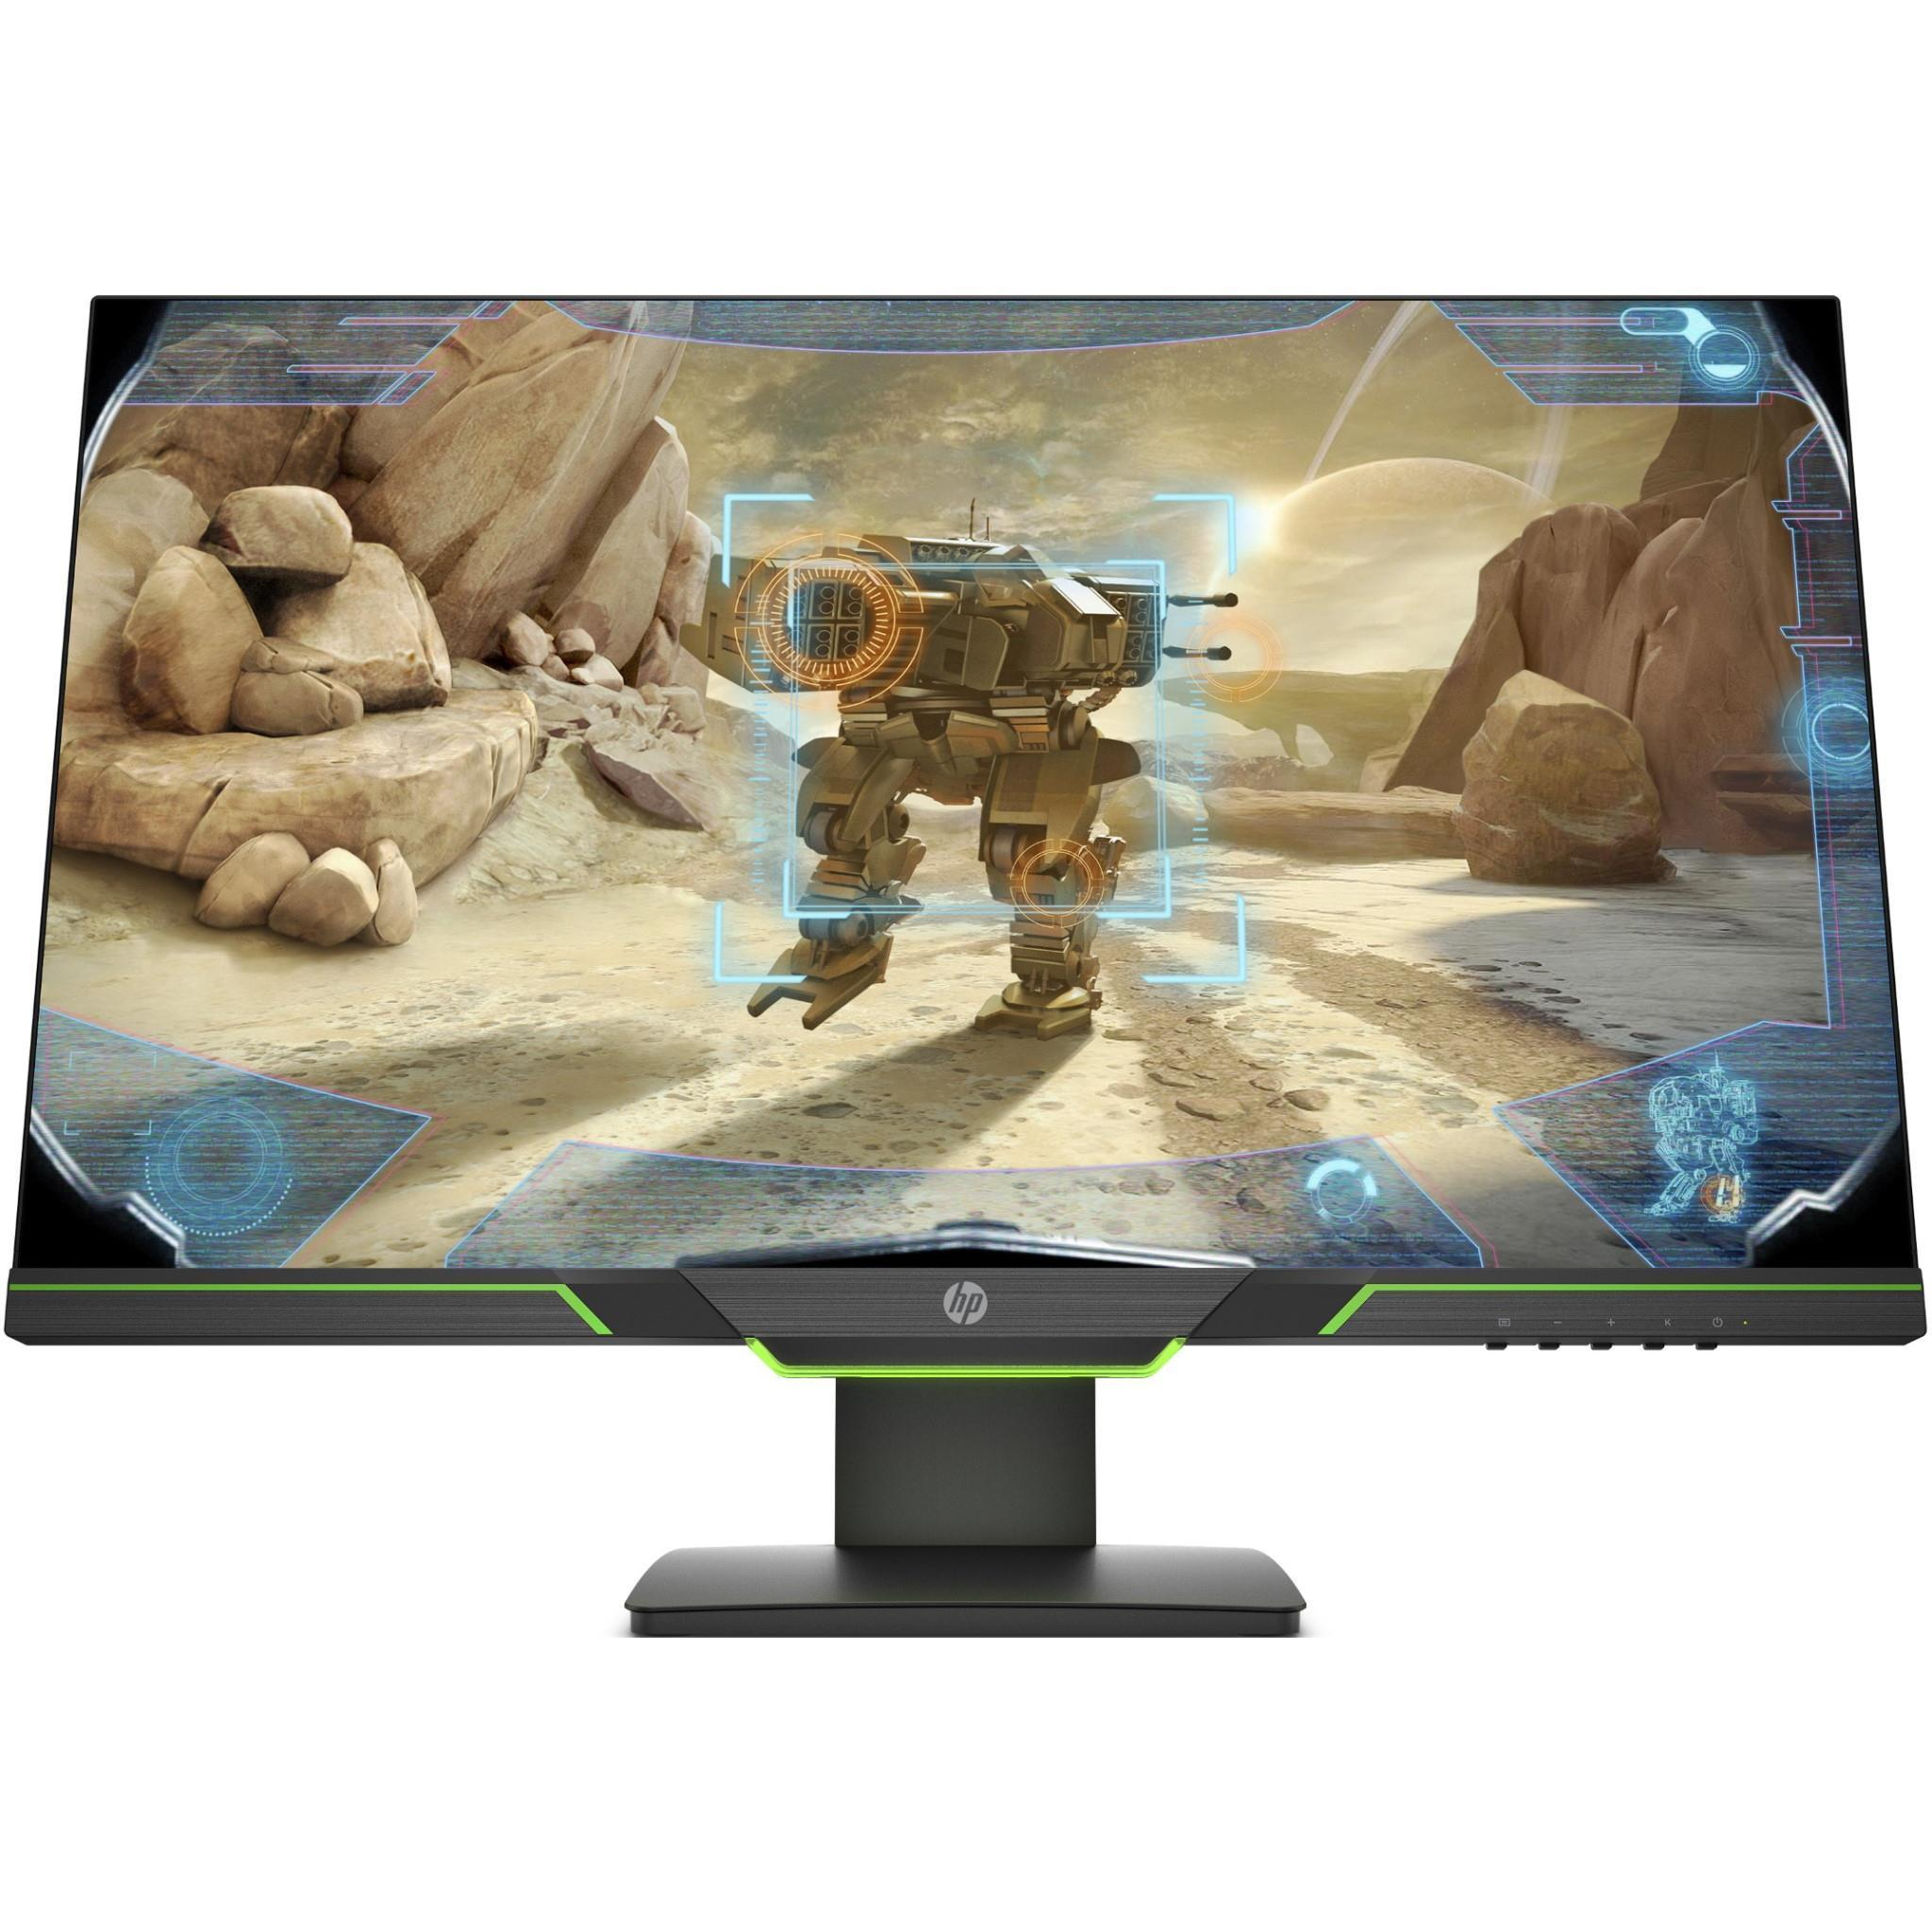 HP 27x 27″ Full HD 144Hz TN Gaming Monitor with FreeSync